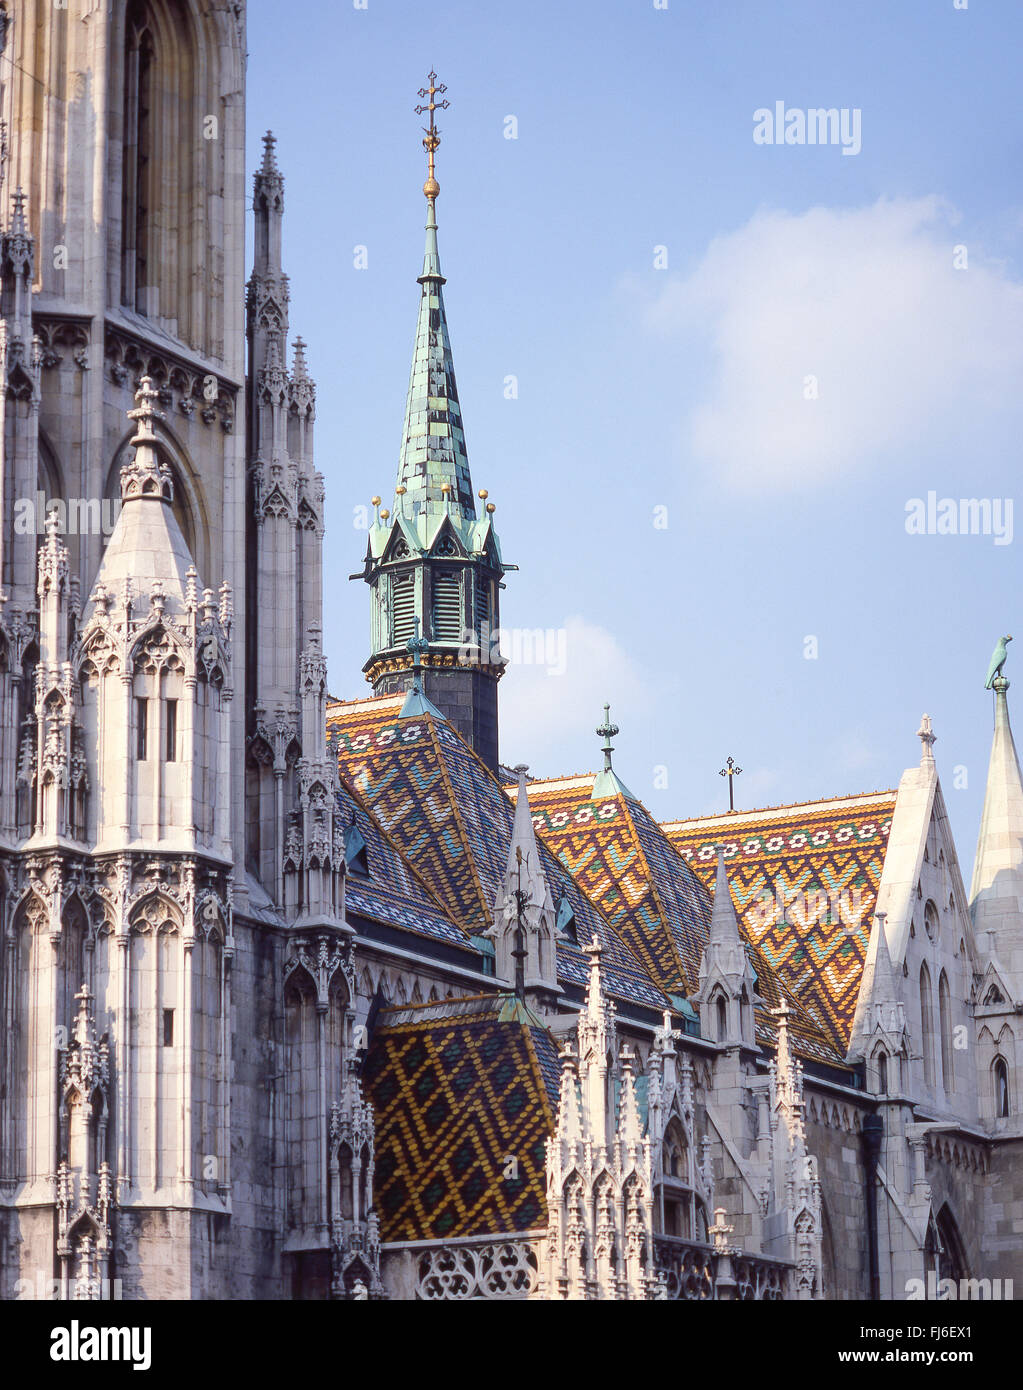 14th century Matthias Church (Mátyás Templom), Szentháromság tér, The Castle District, - Stock Image